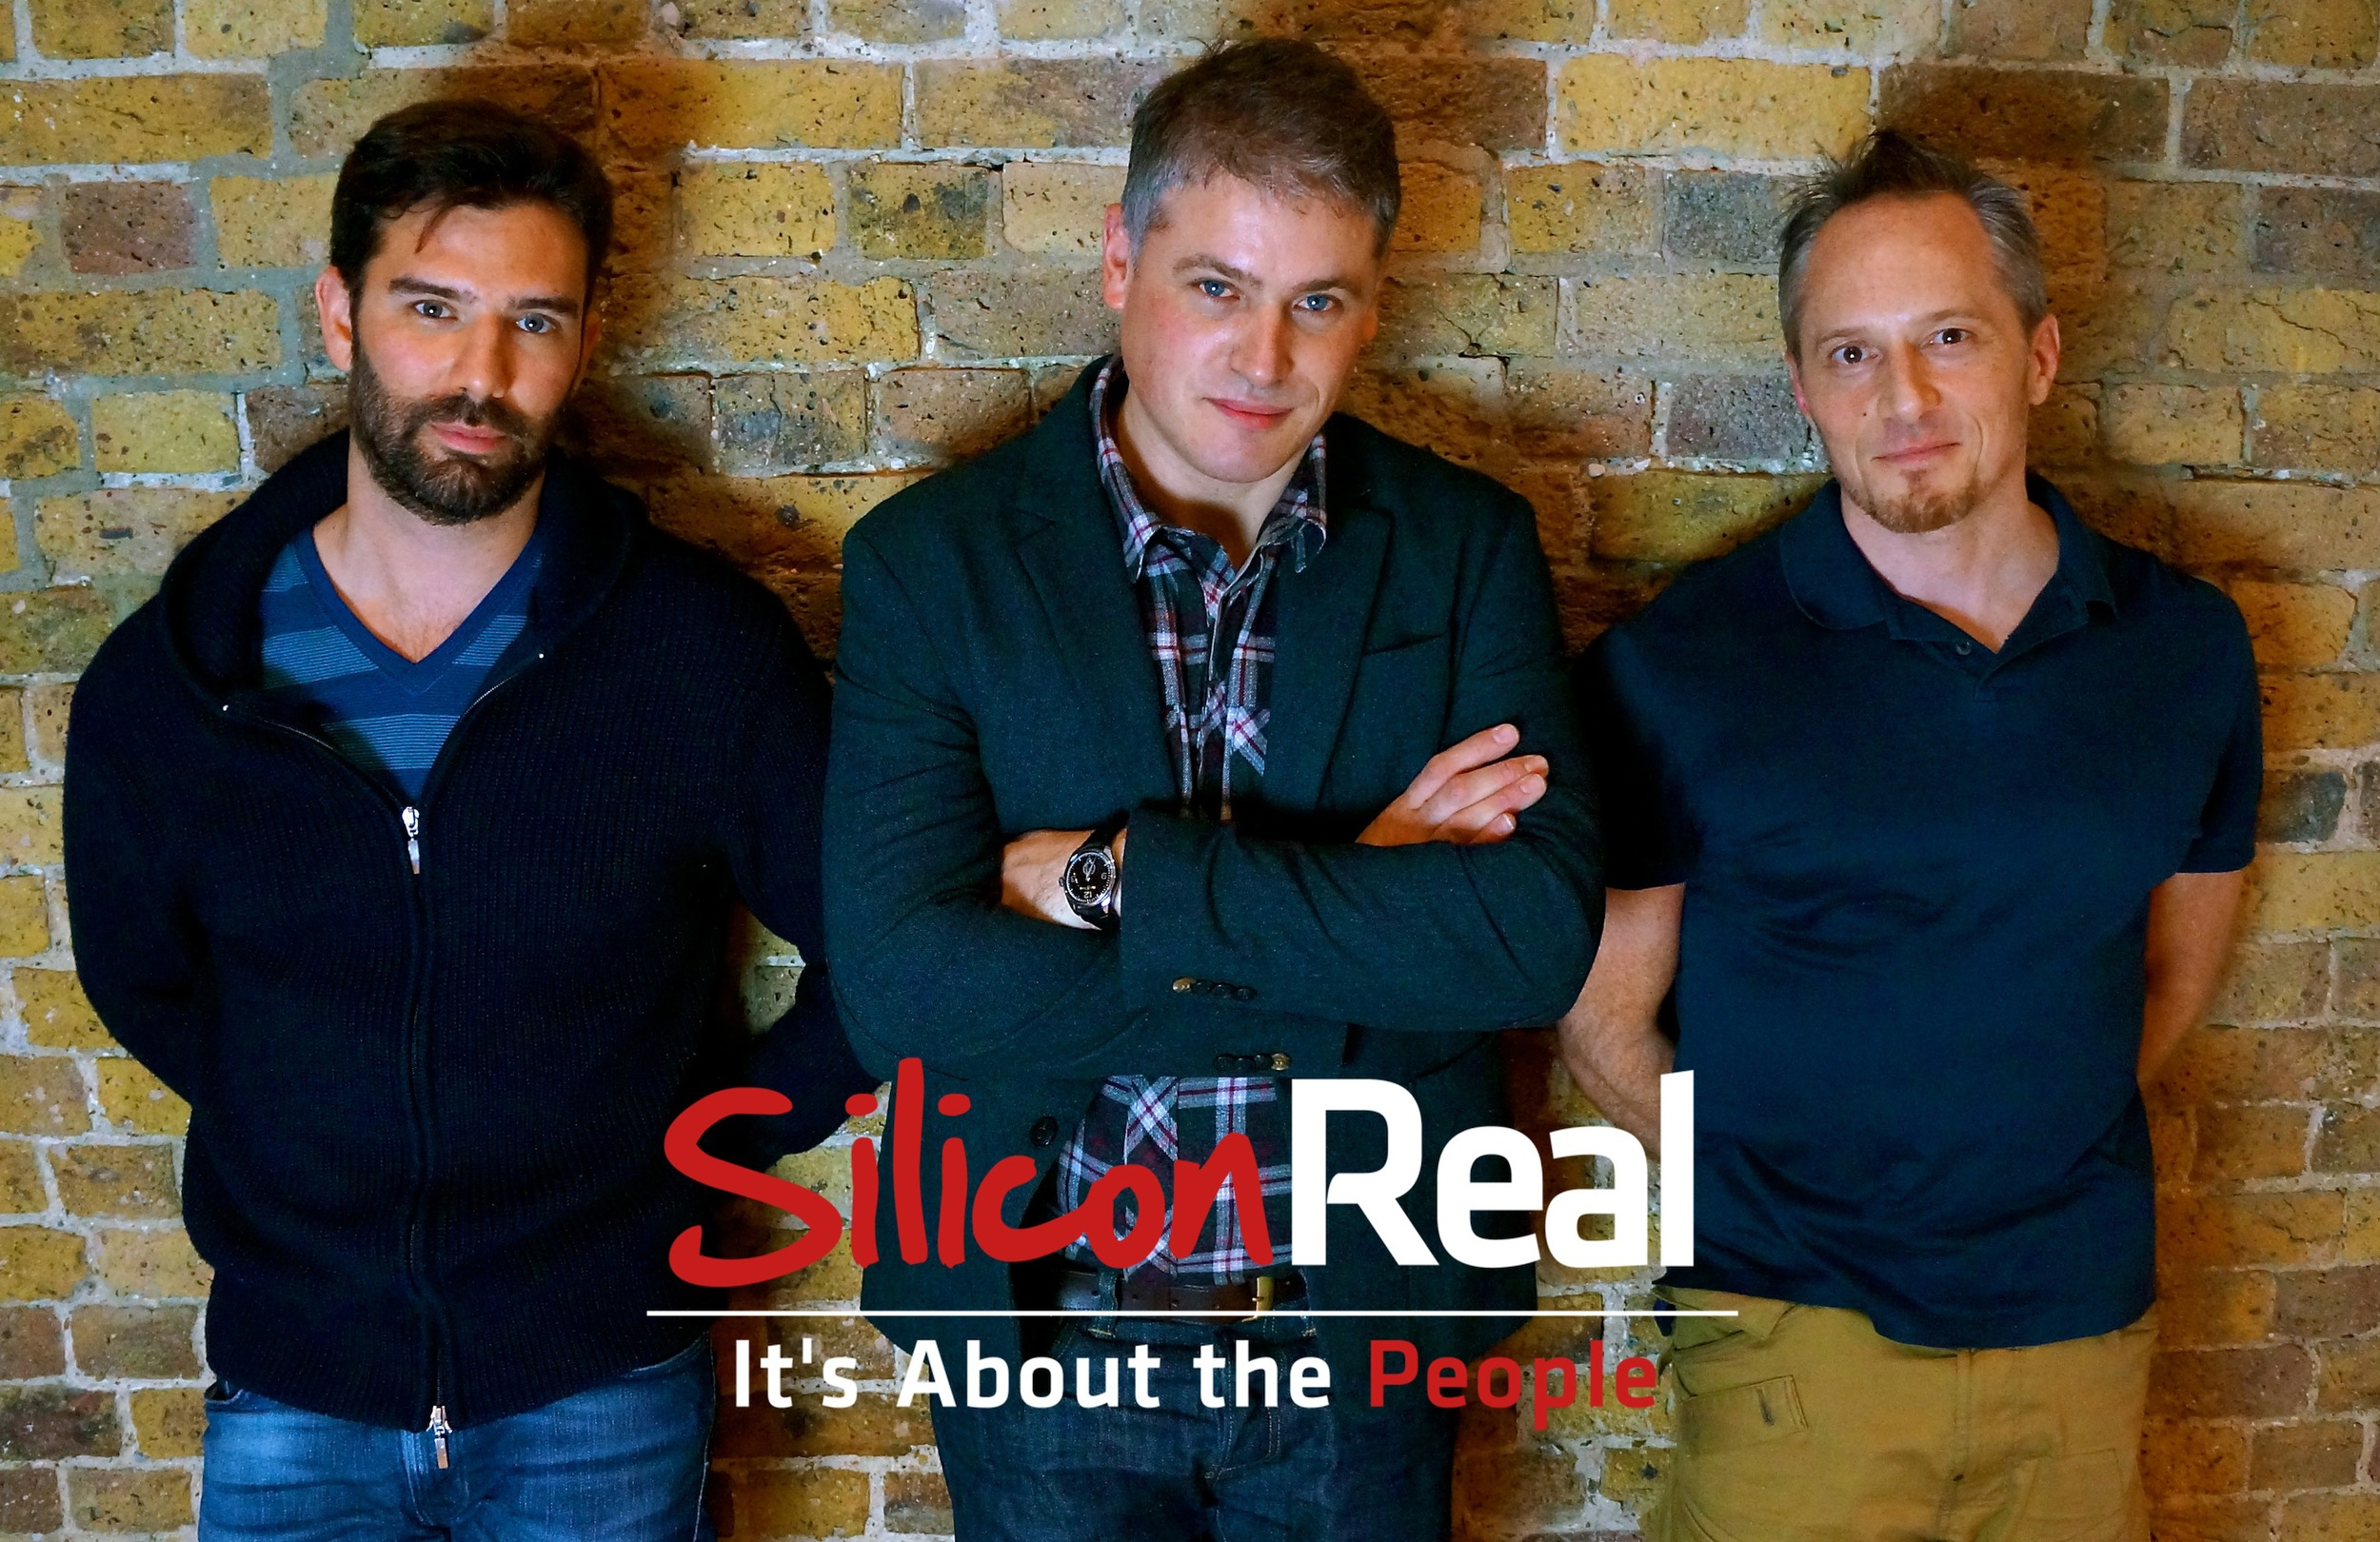 Jason Goodman, Founder of Albion, visits Silicon Real